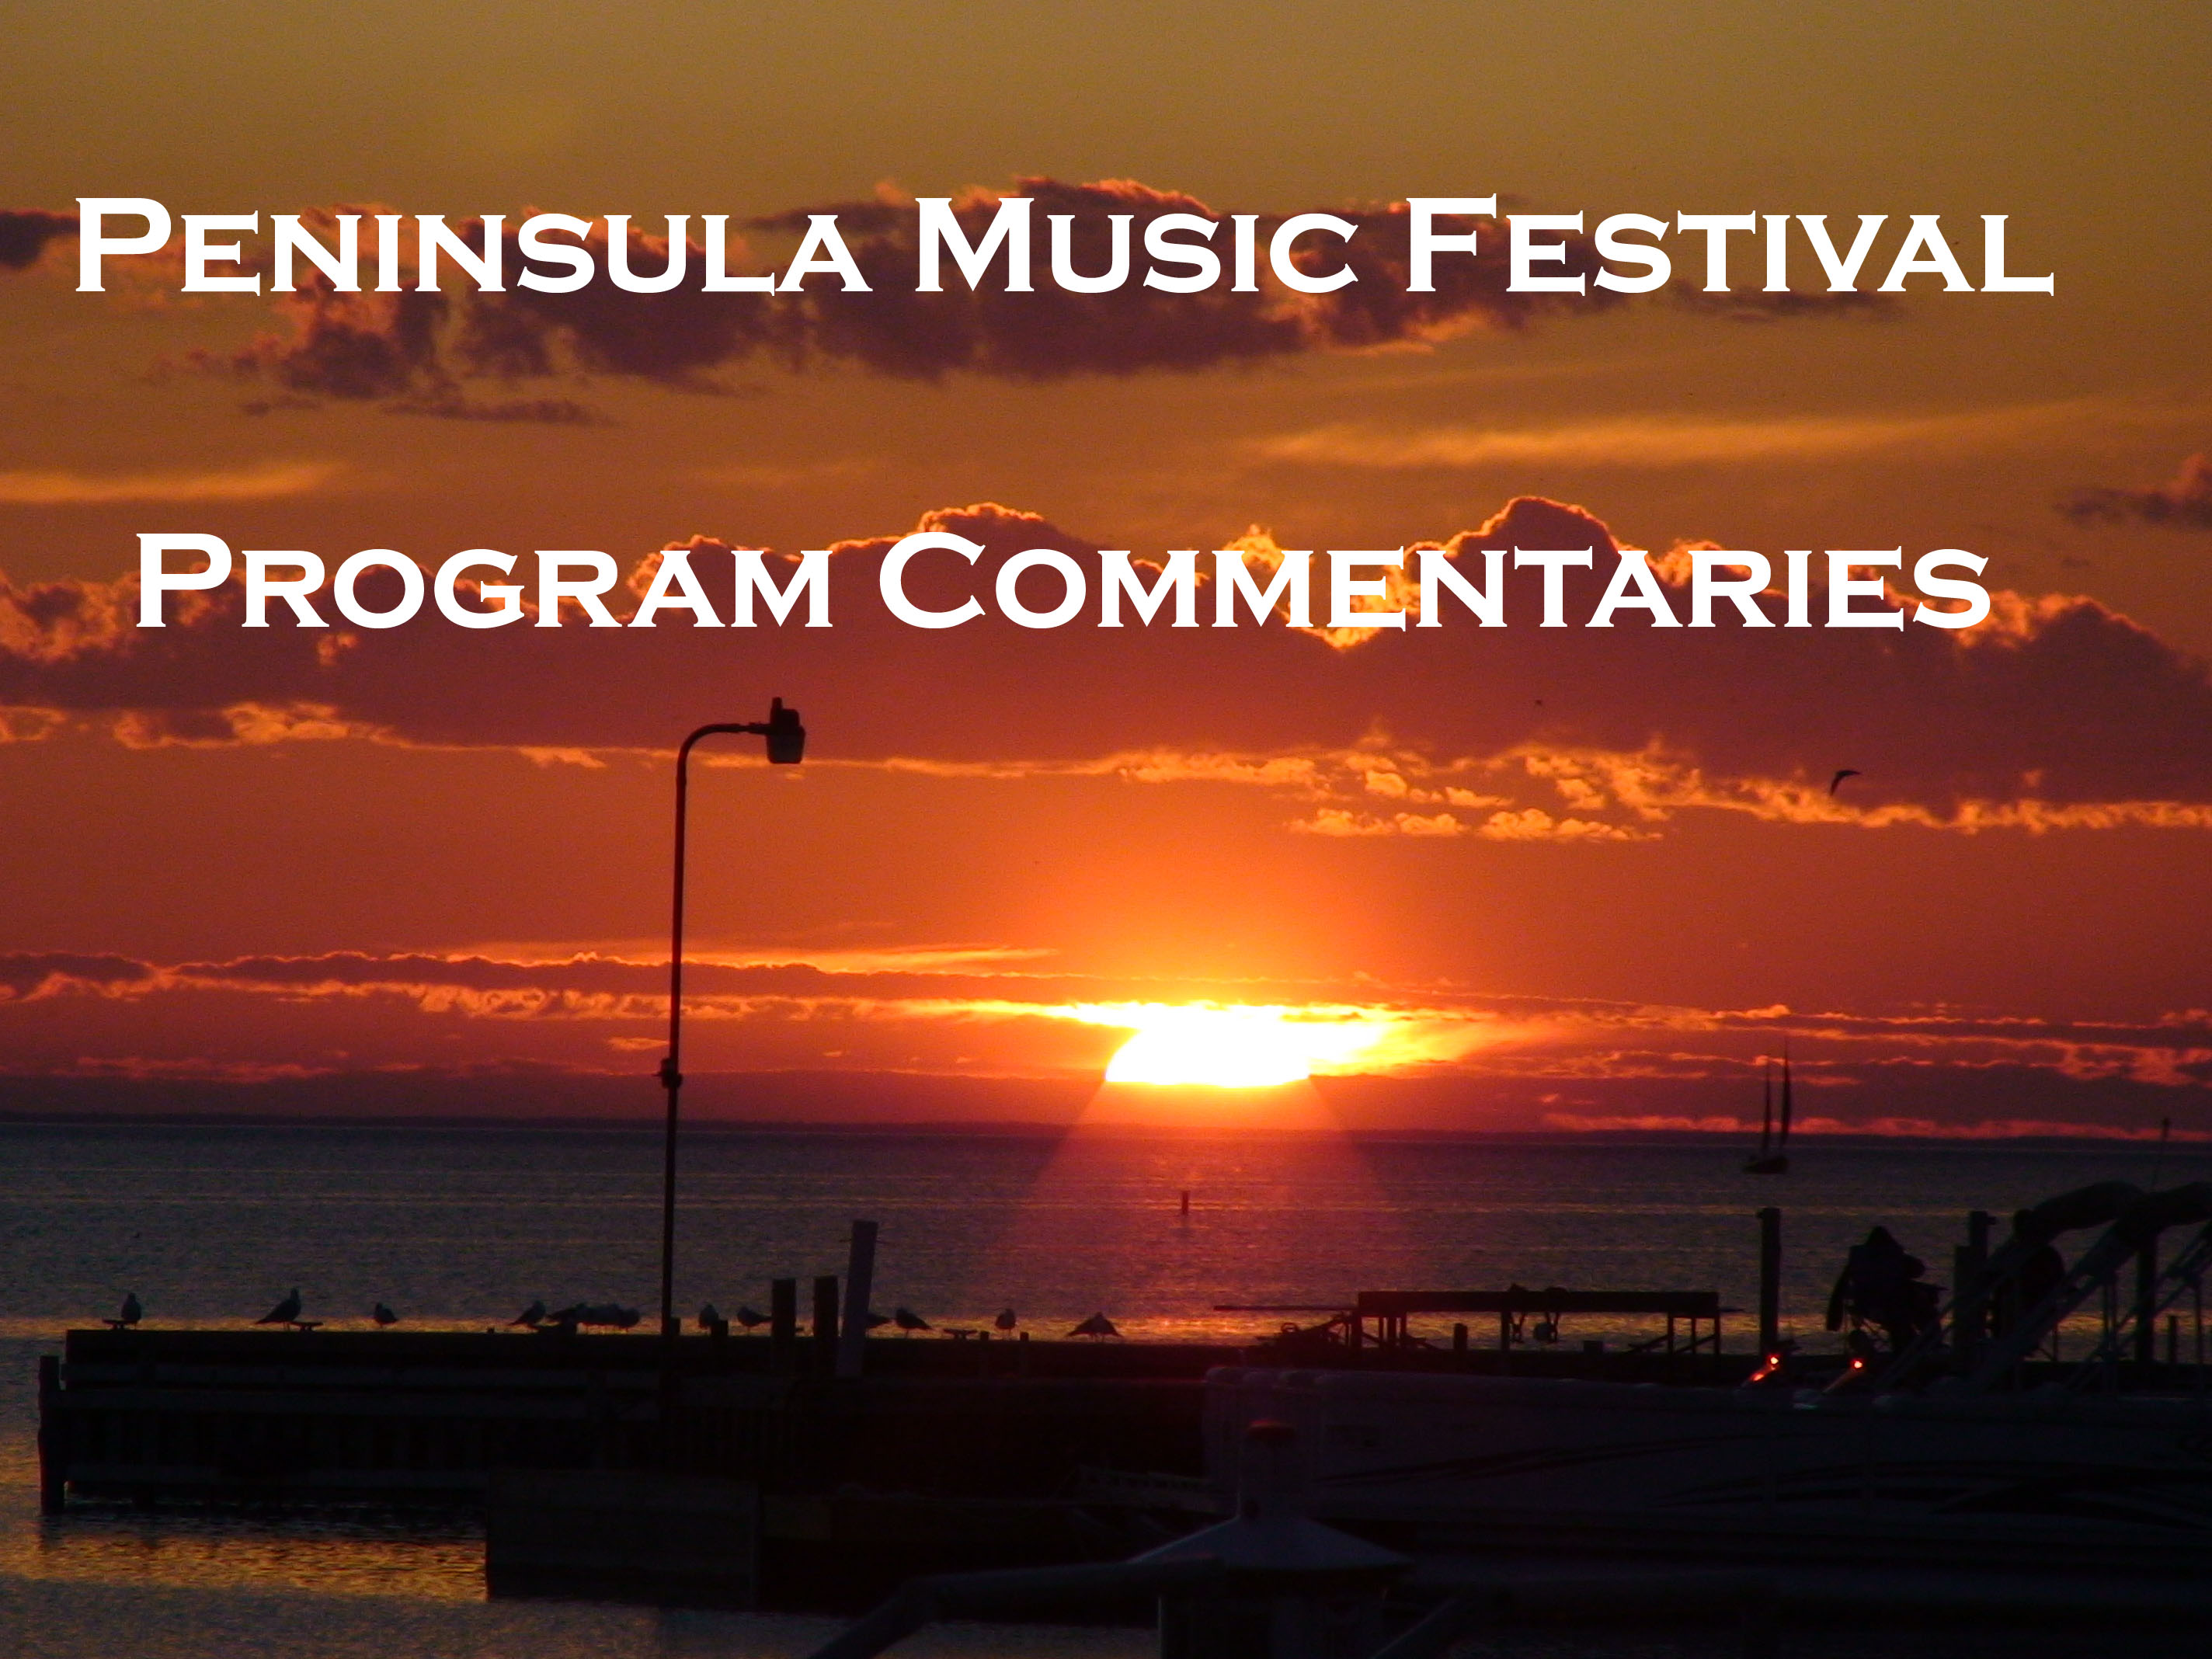 Peninsula Music Festival Program Comments